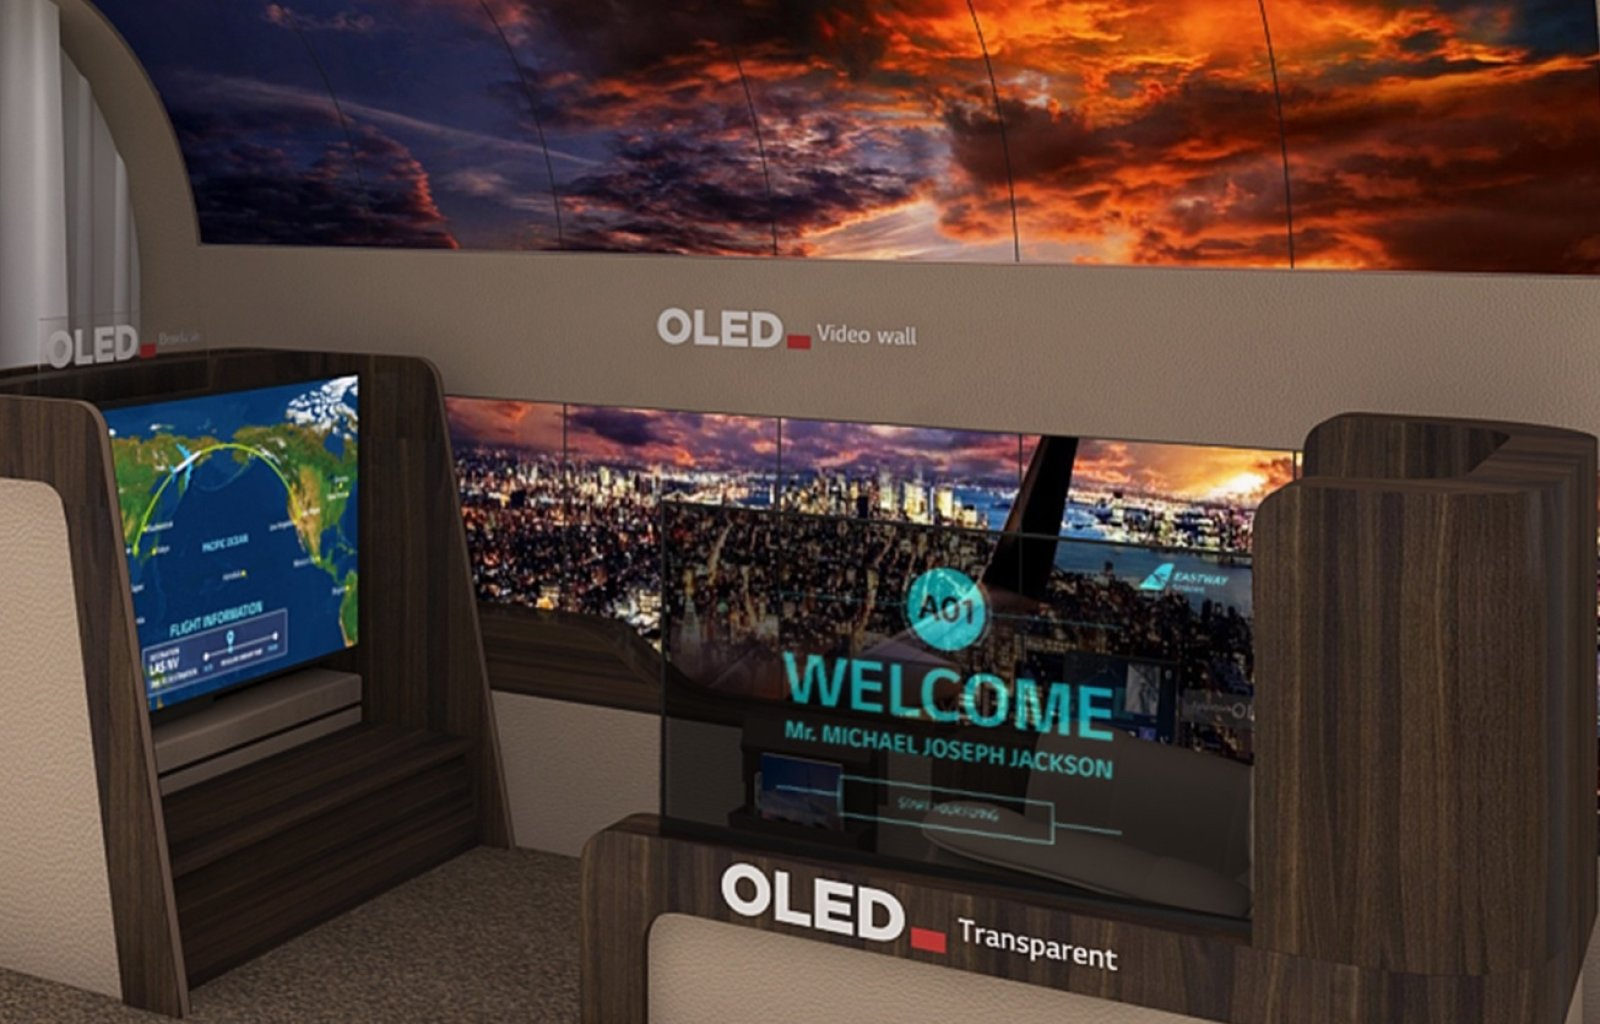 LG's new rollable OLED TV unfurls from the ceiling